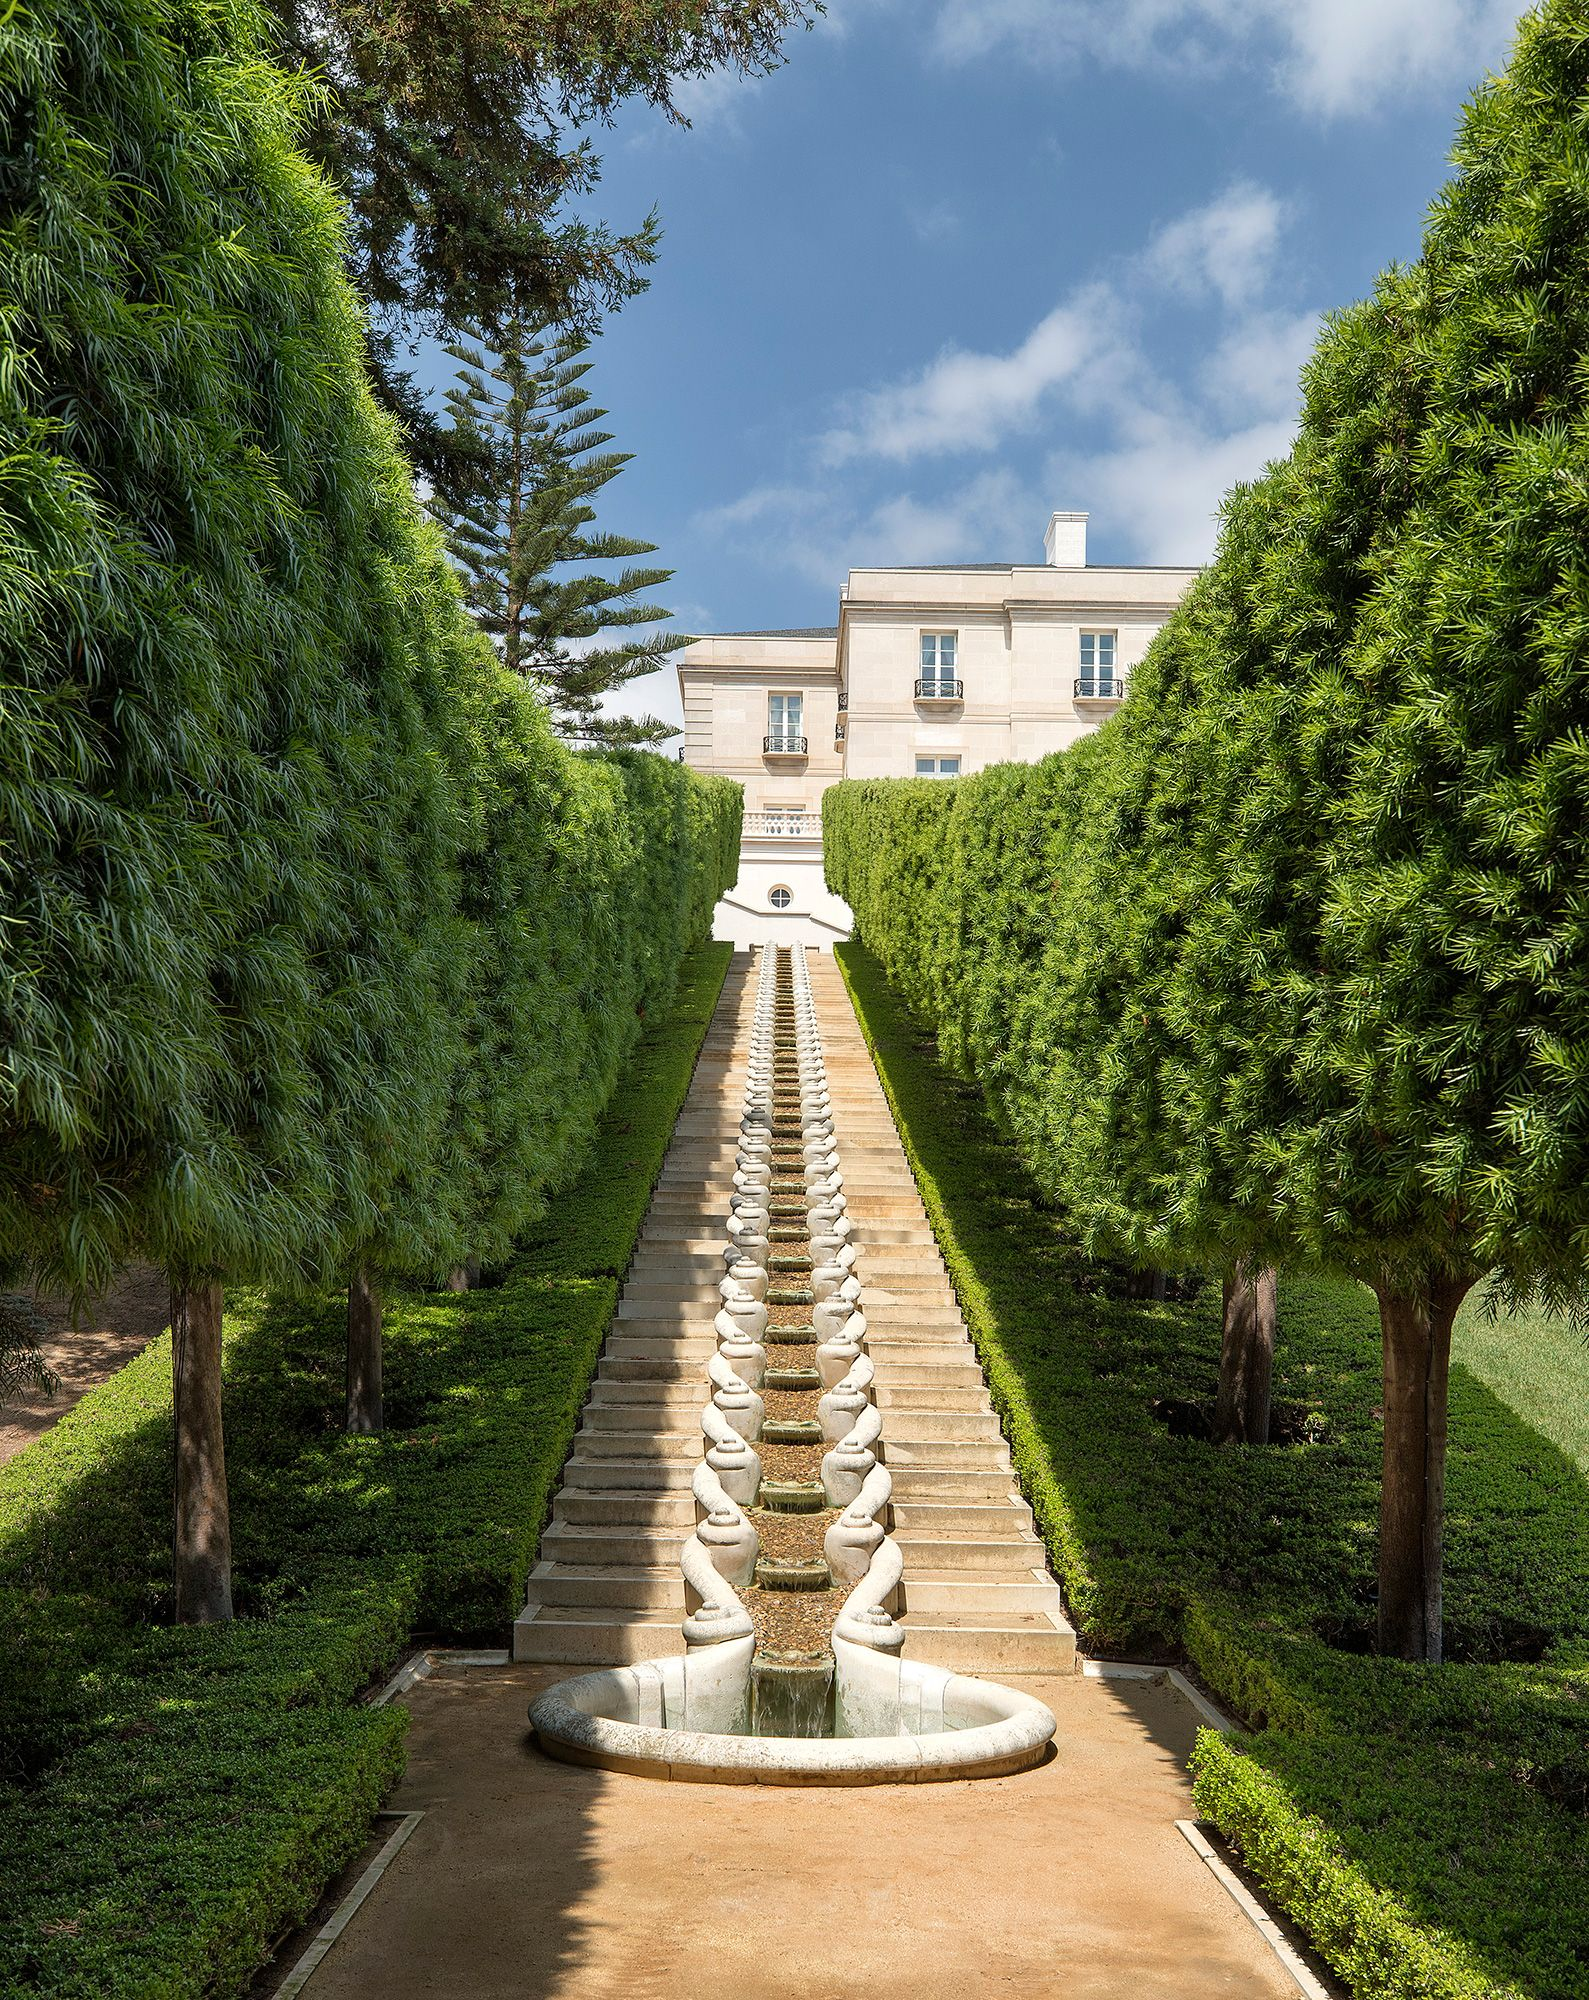 The Real Beverly Hillbillies Mansion Sells For About 150m The Highest Price In California History See The Photos Expensive Houses Houses In America Mansions For Sale